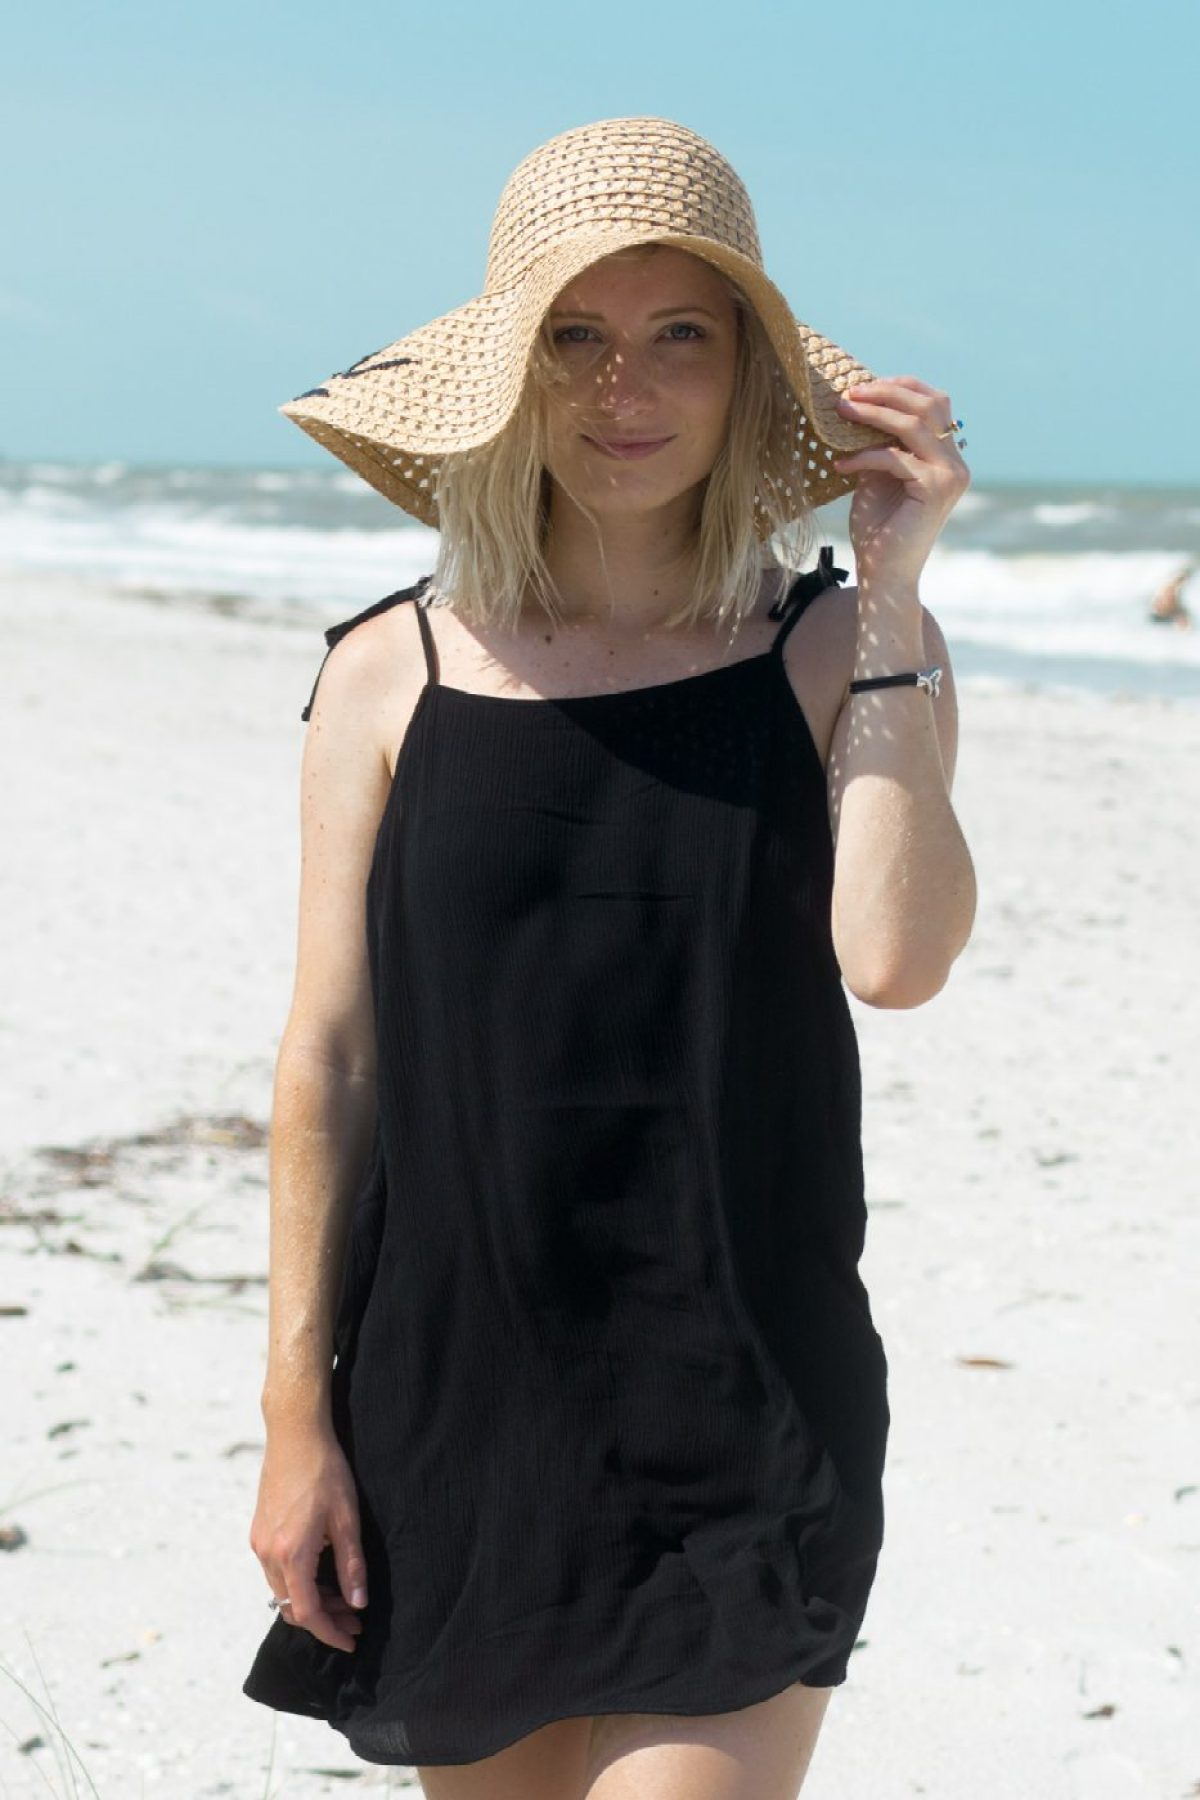 Forever 21 Dress with Barefoot Sandals worn by Jenny Bess